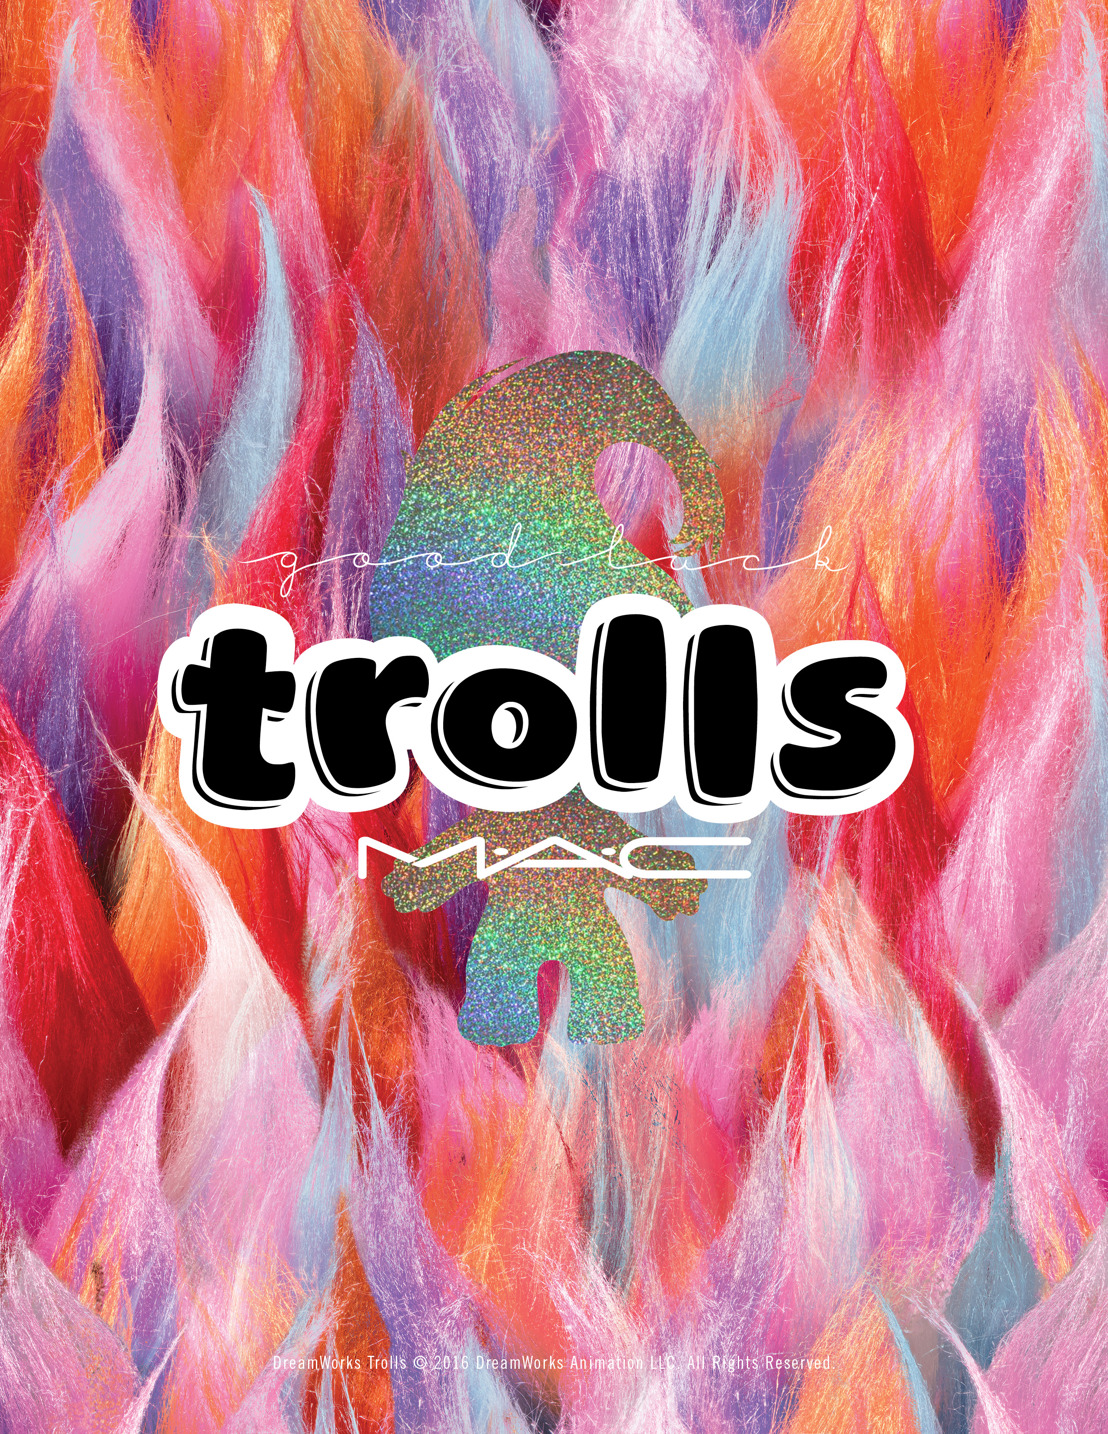 M.A.C Cosmetics - All good trolls